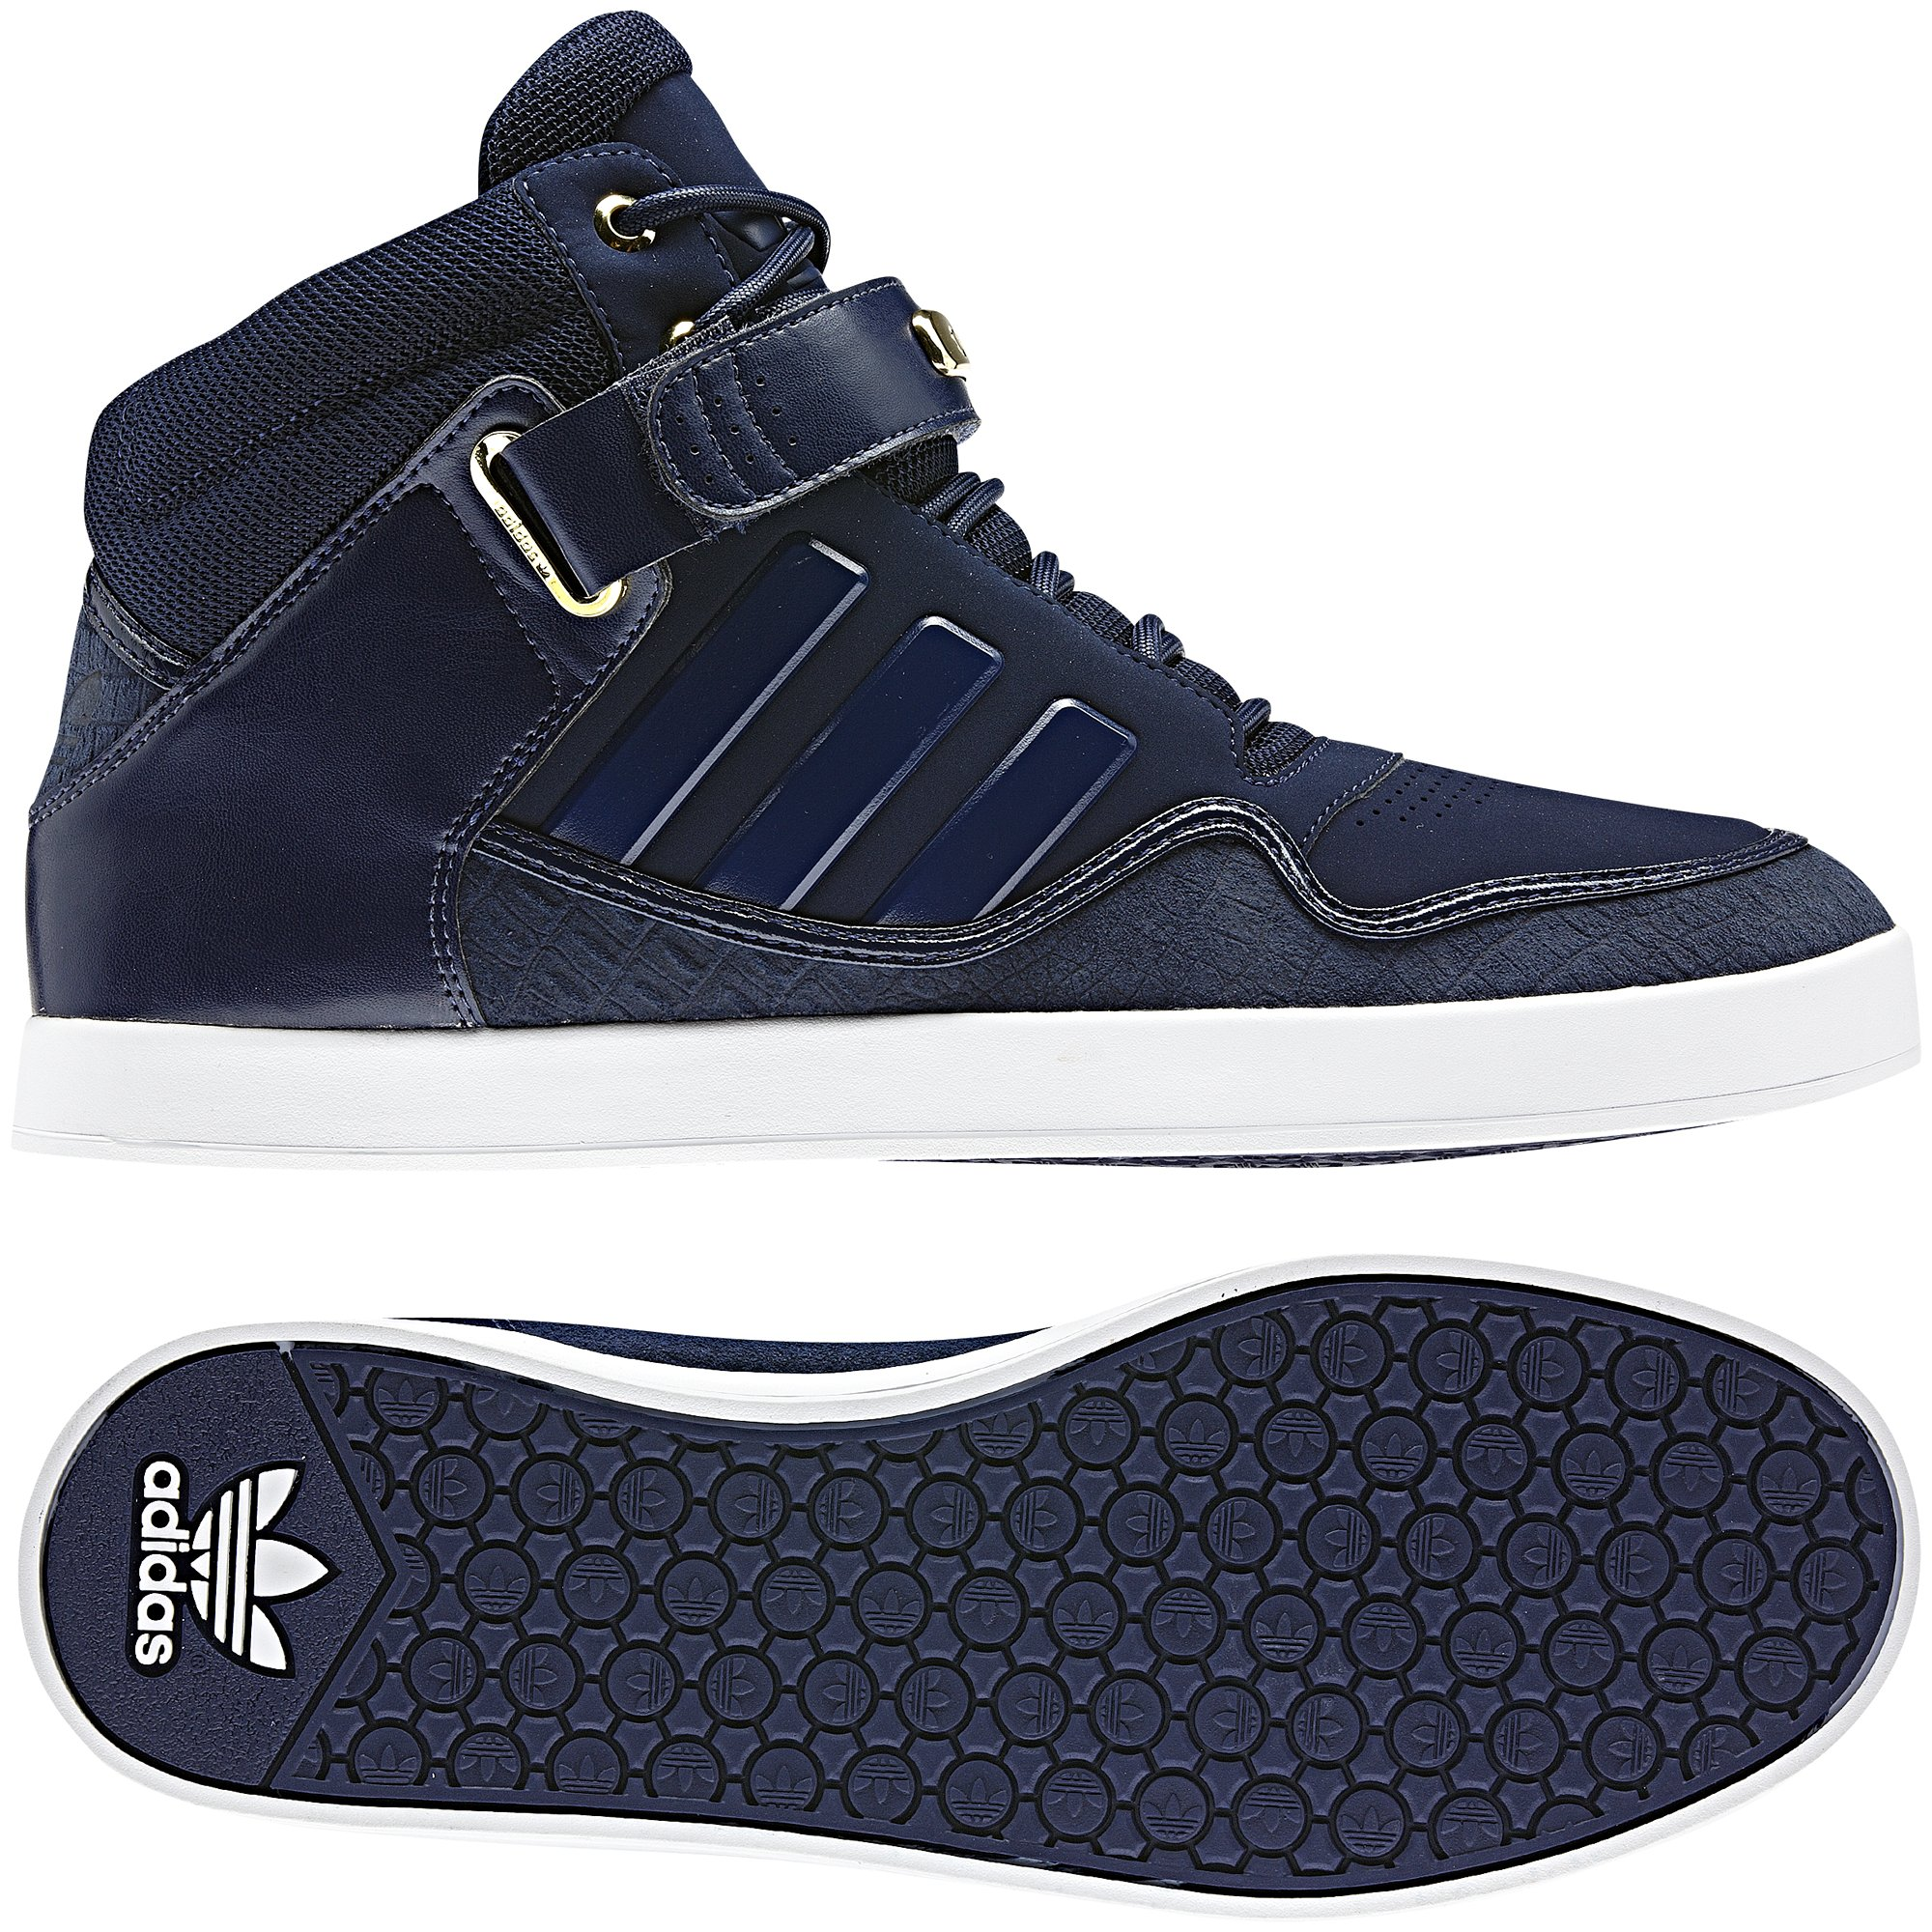 Chaussures Adidas, Hommes Chaussures Pro Play adidas Iziva